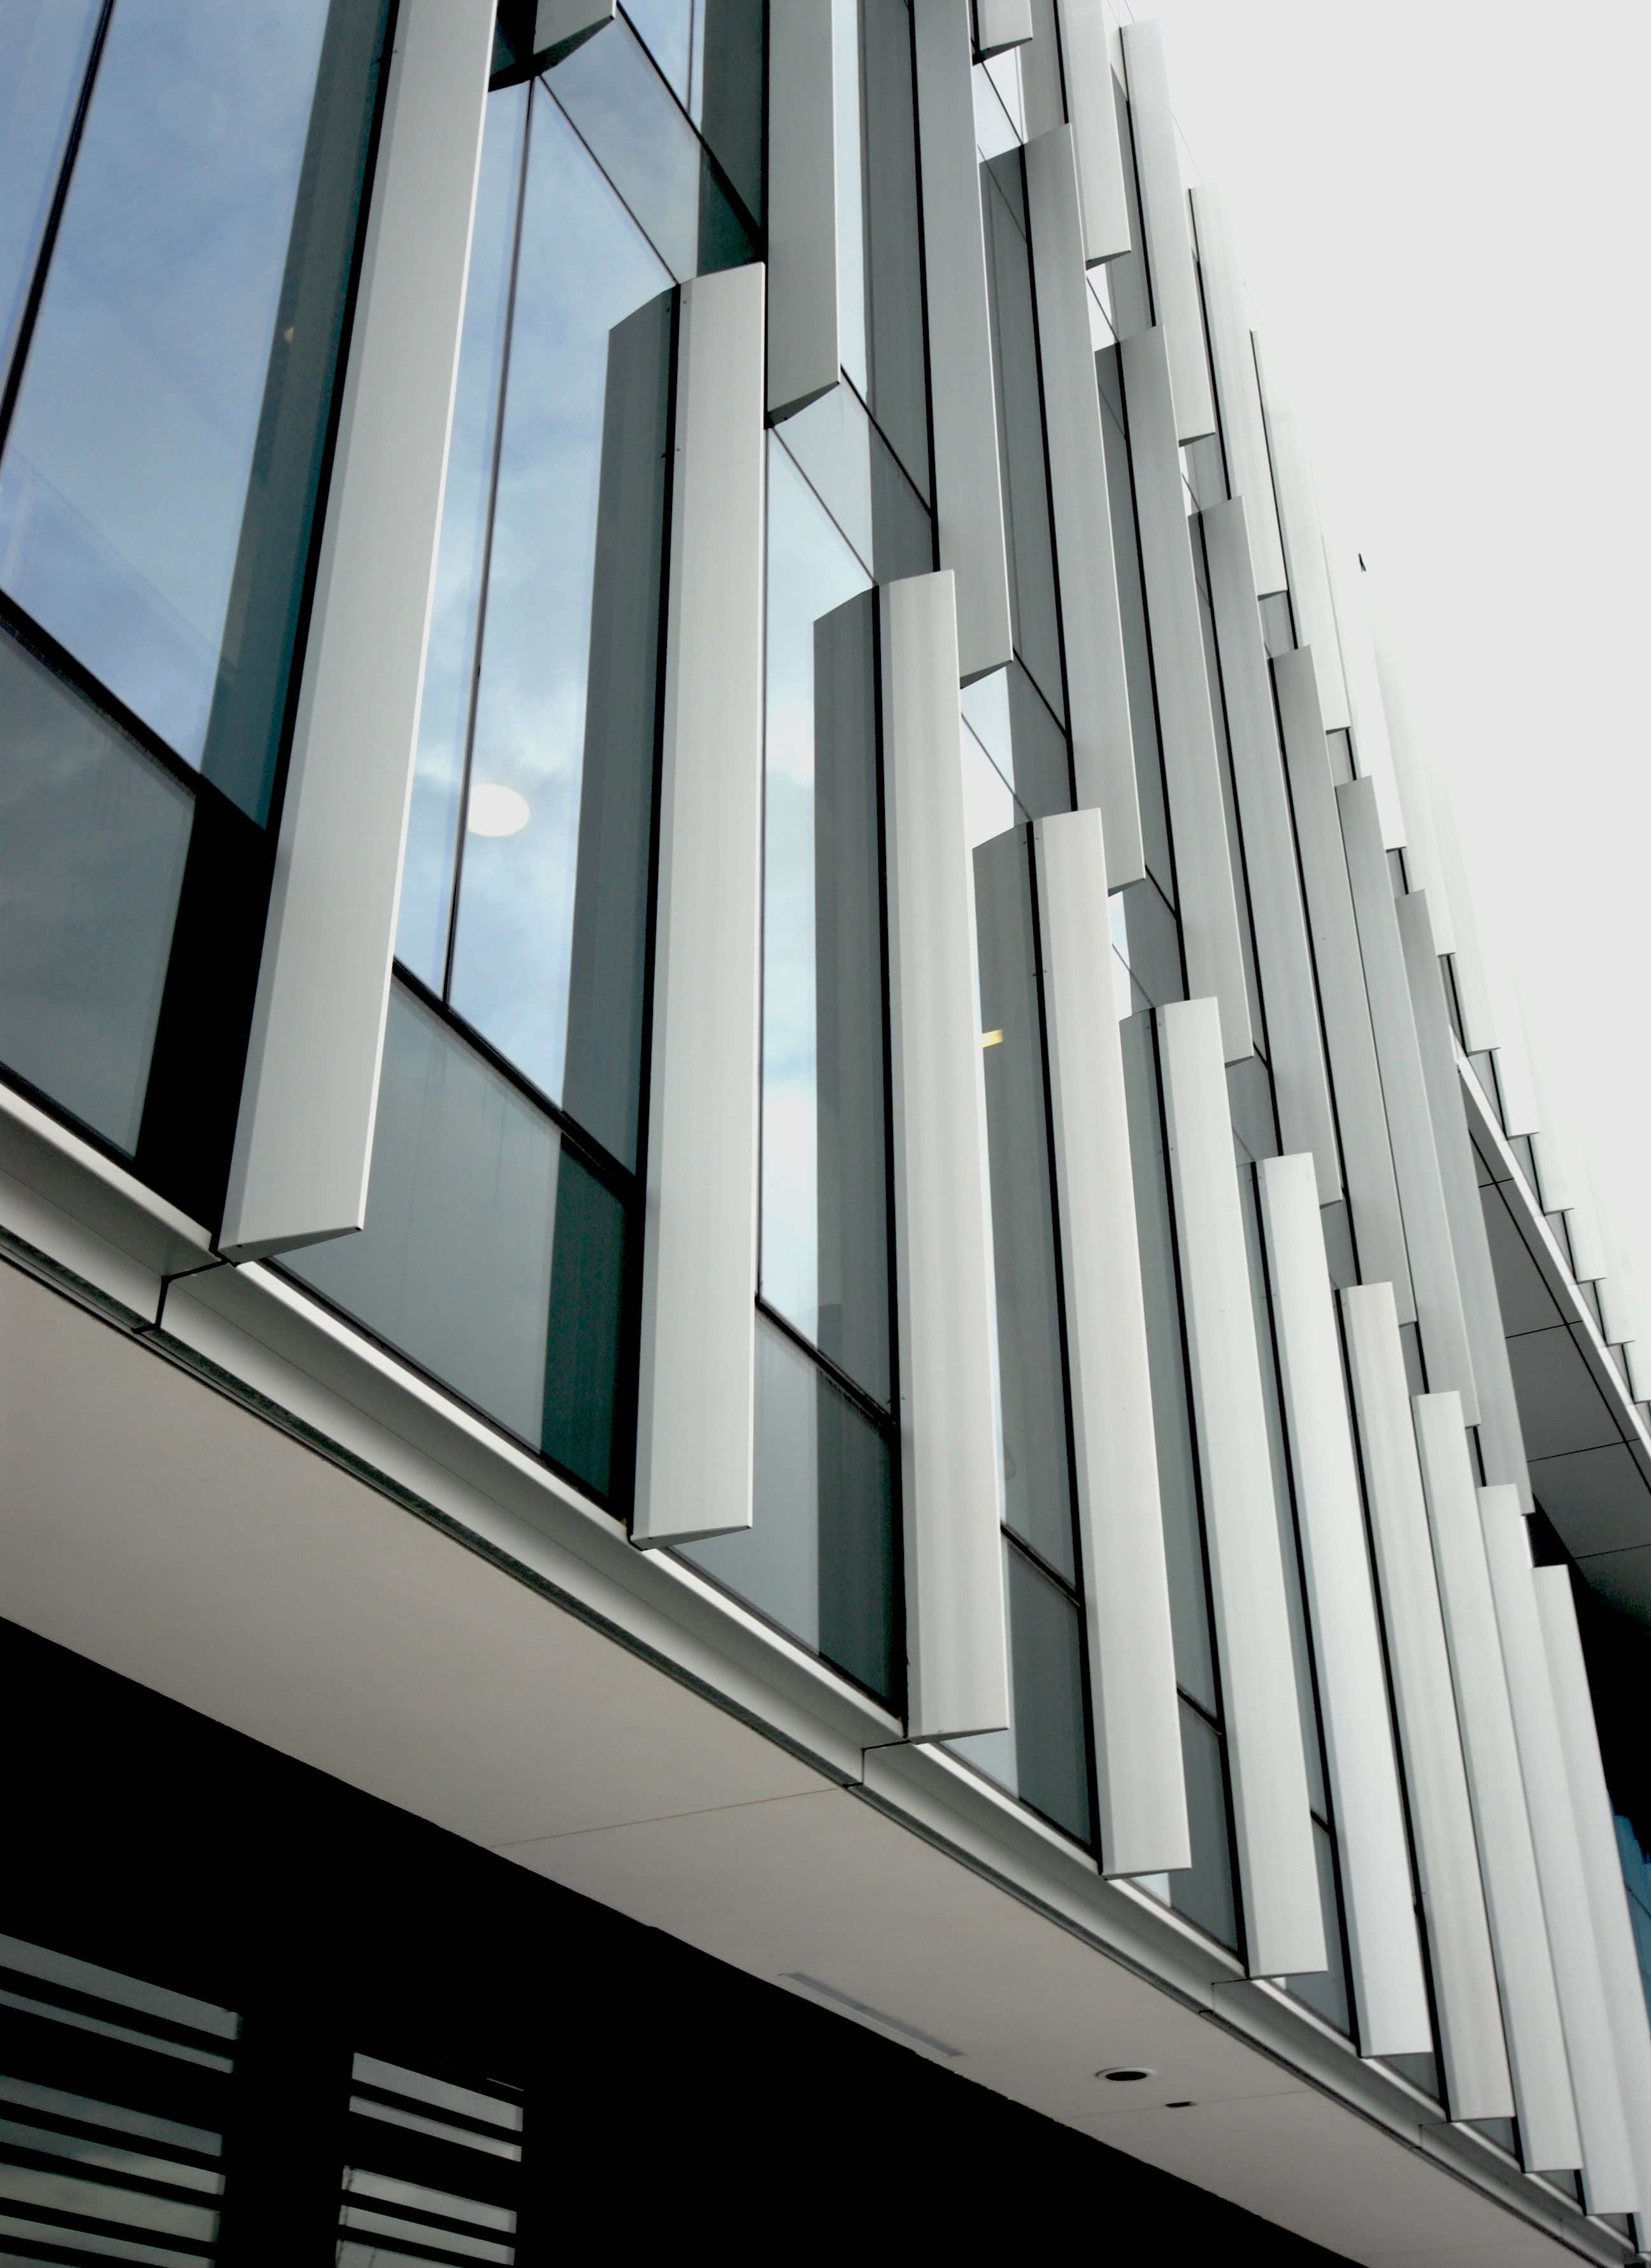 Wall Design Build Inc : Adobe utah louvers fins glass photo jessie robertson